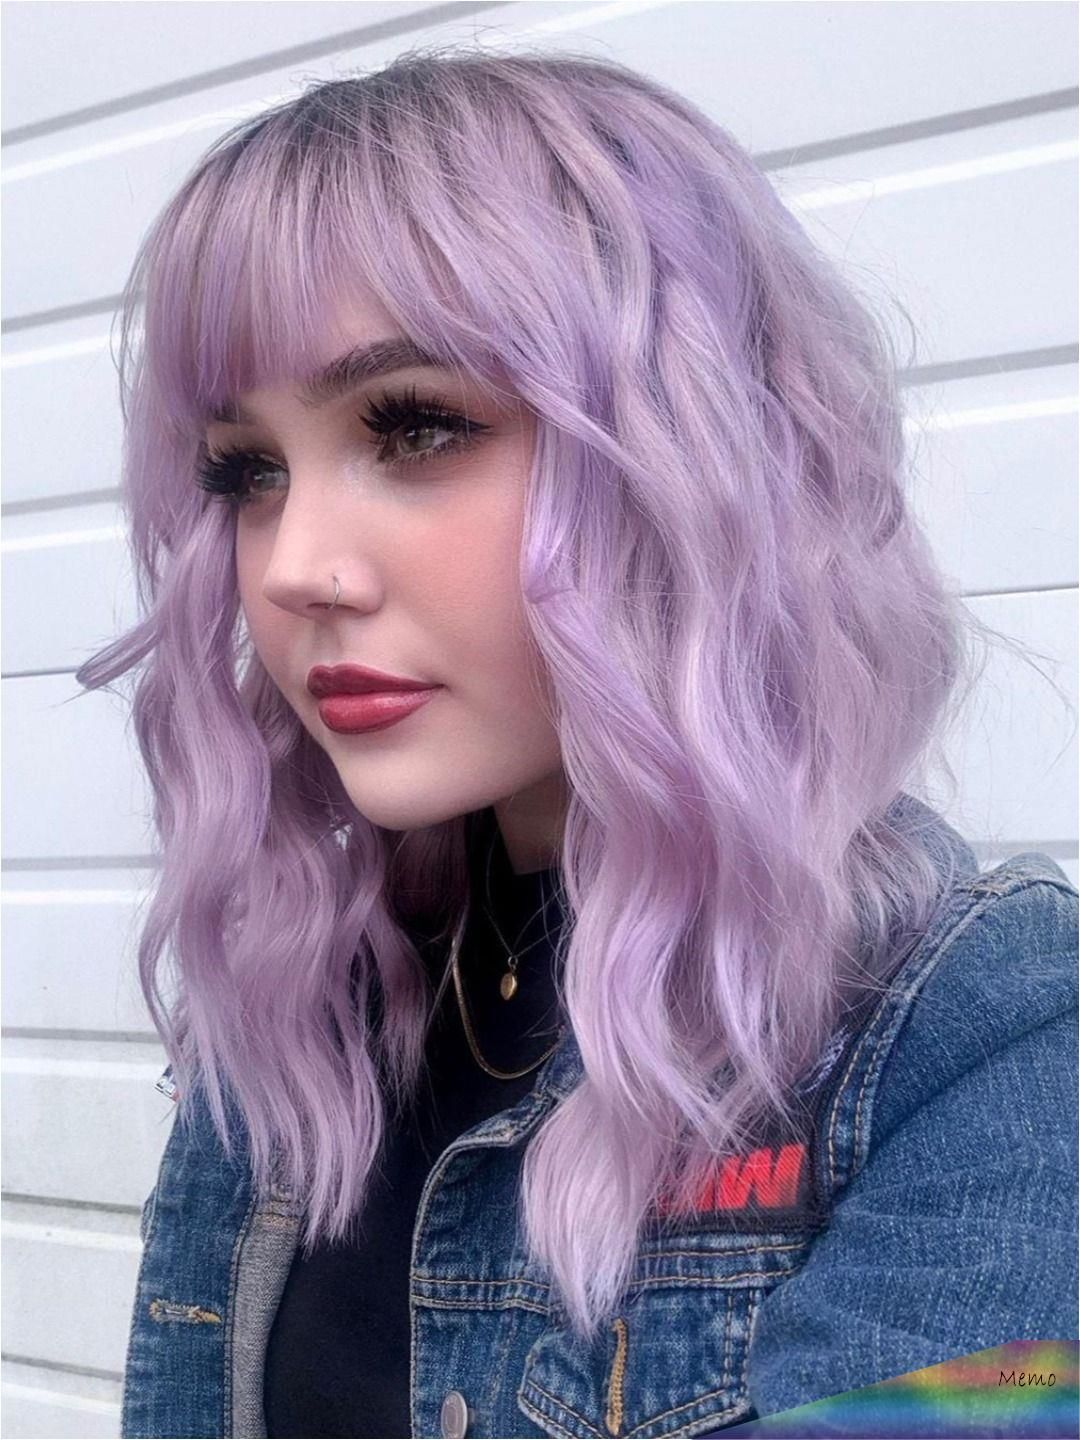 May 26 2020 This Pin Was Discovered By Nina Mori Discover And Save Your Own Pins On Pinterest In 2020 Light Purple Hair Hair Inspo Color Aesthetic Hair